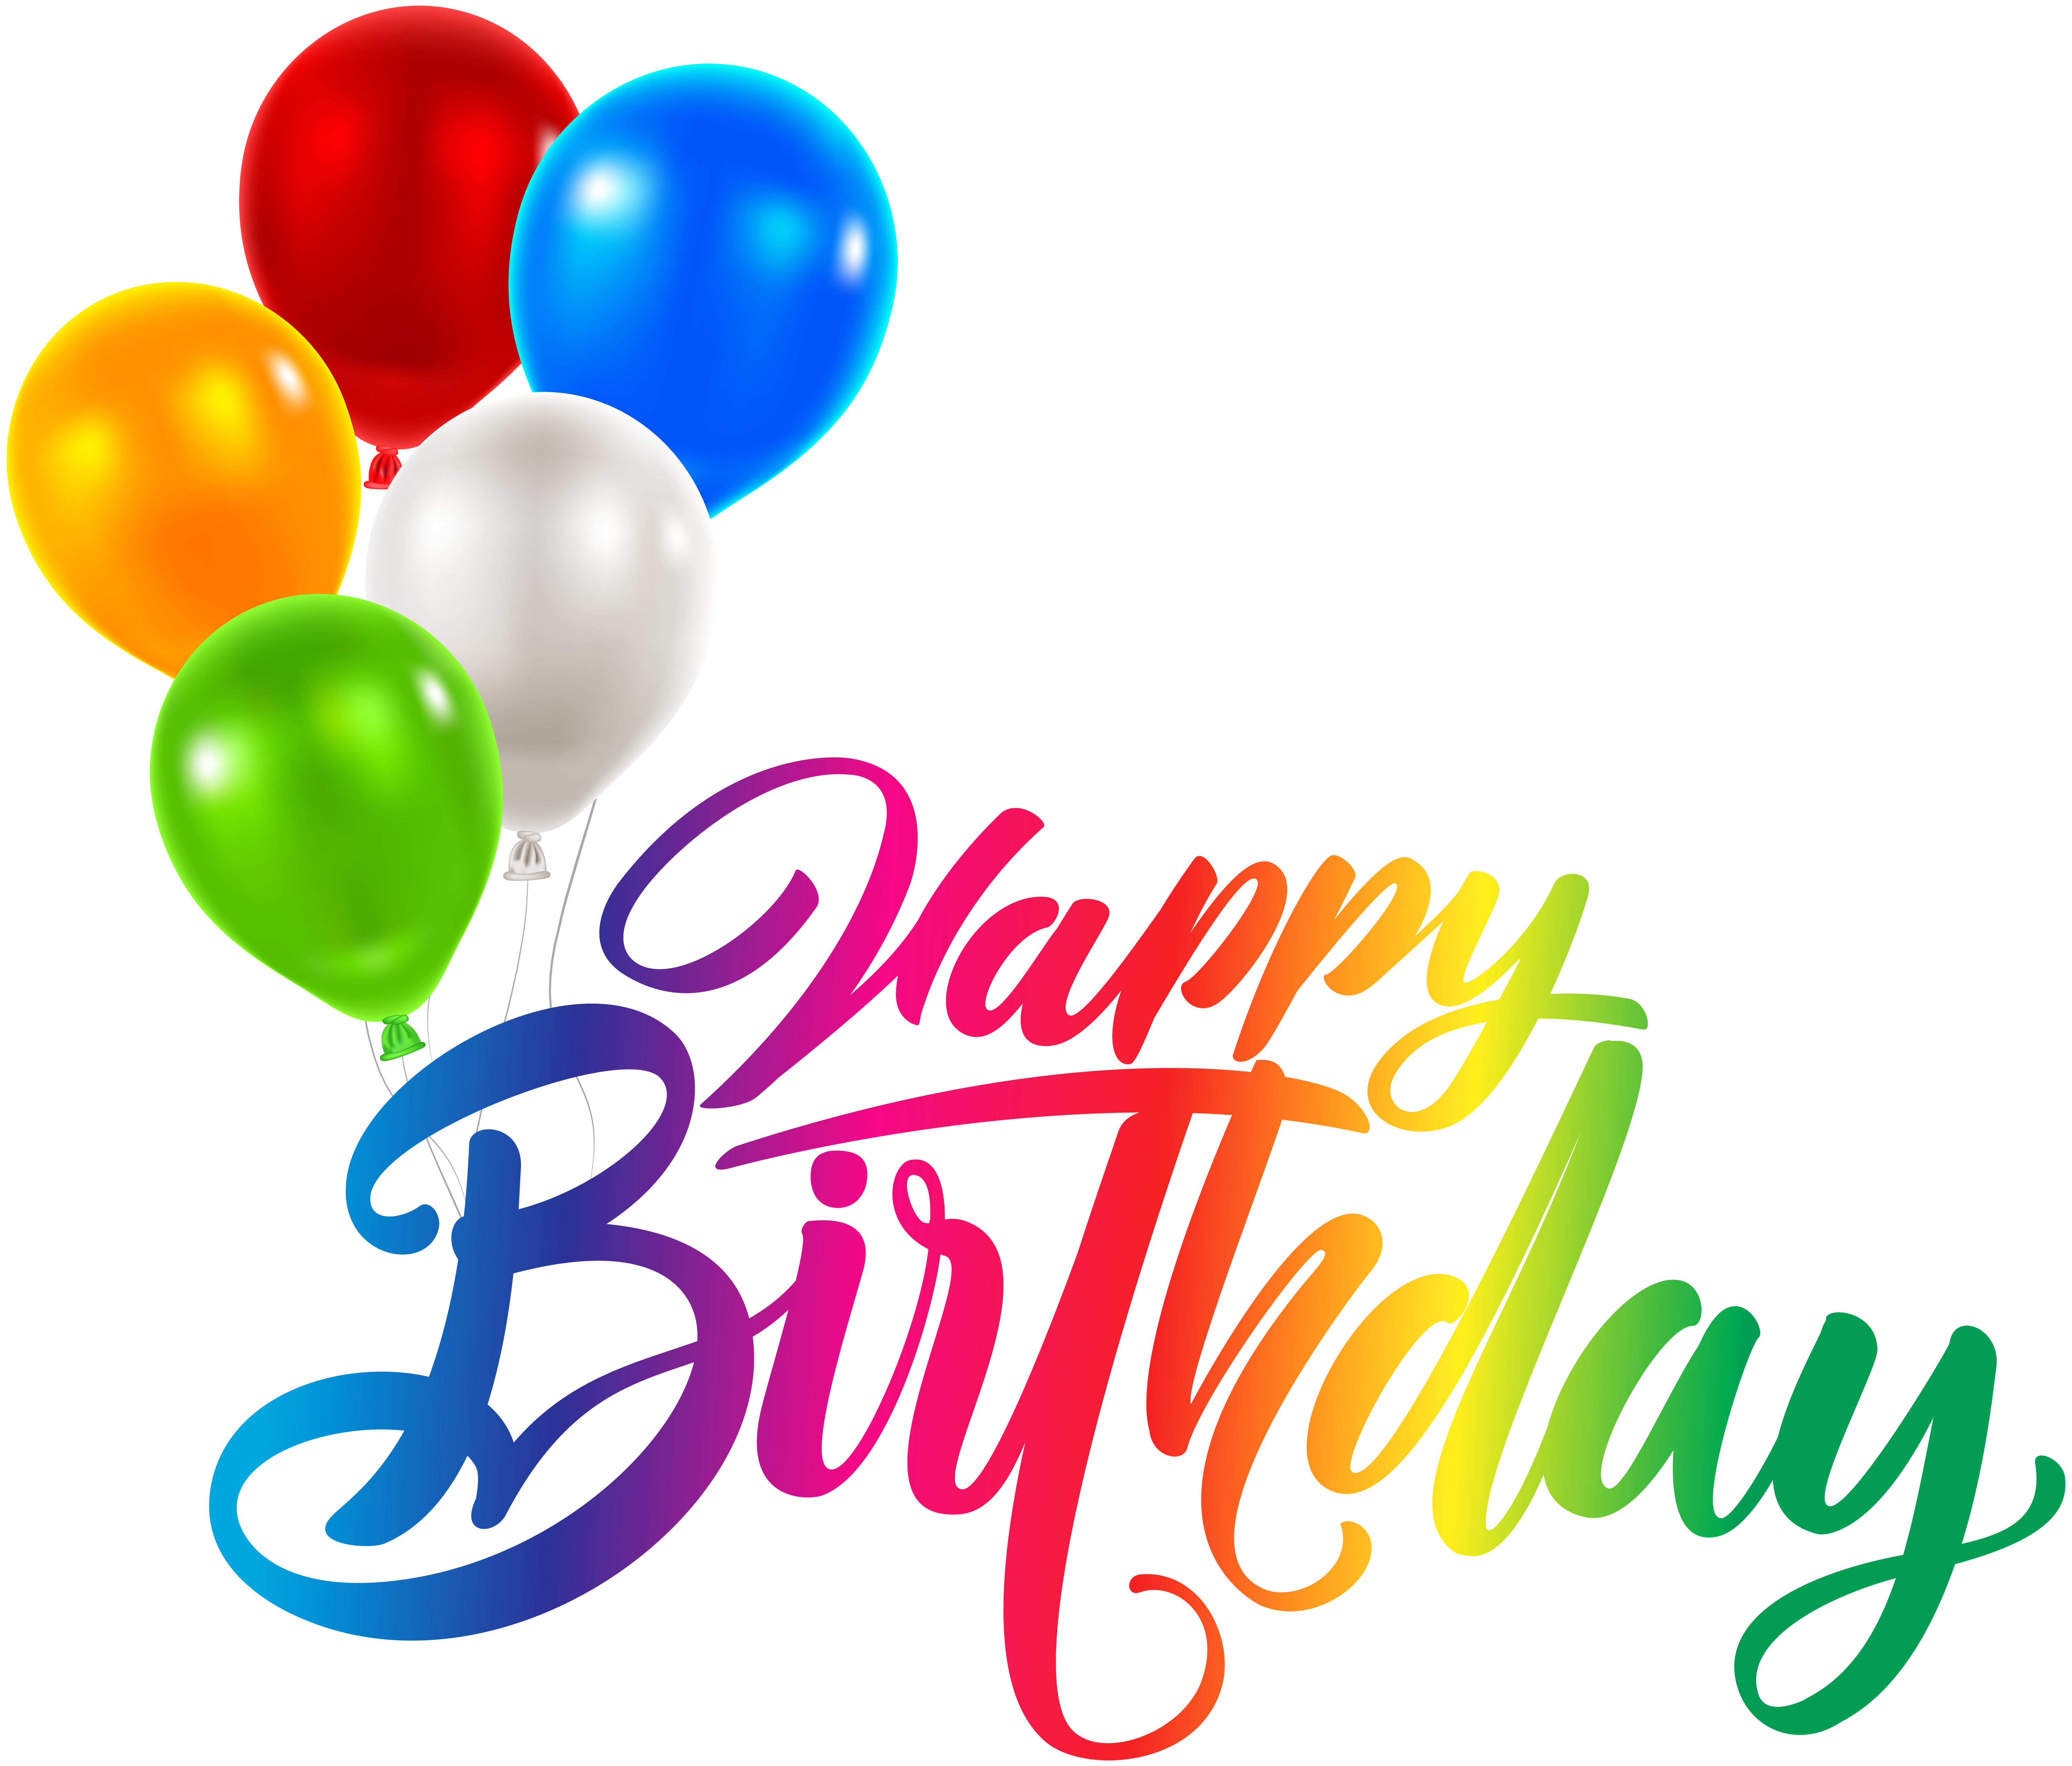 Happy birthday png images. Brilliant design clip art